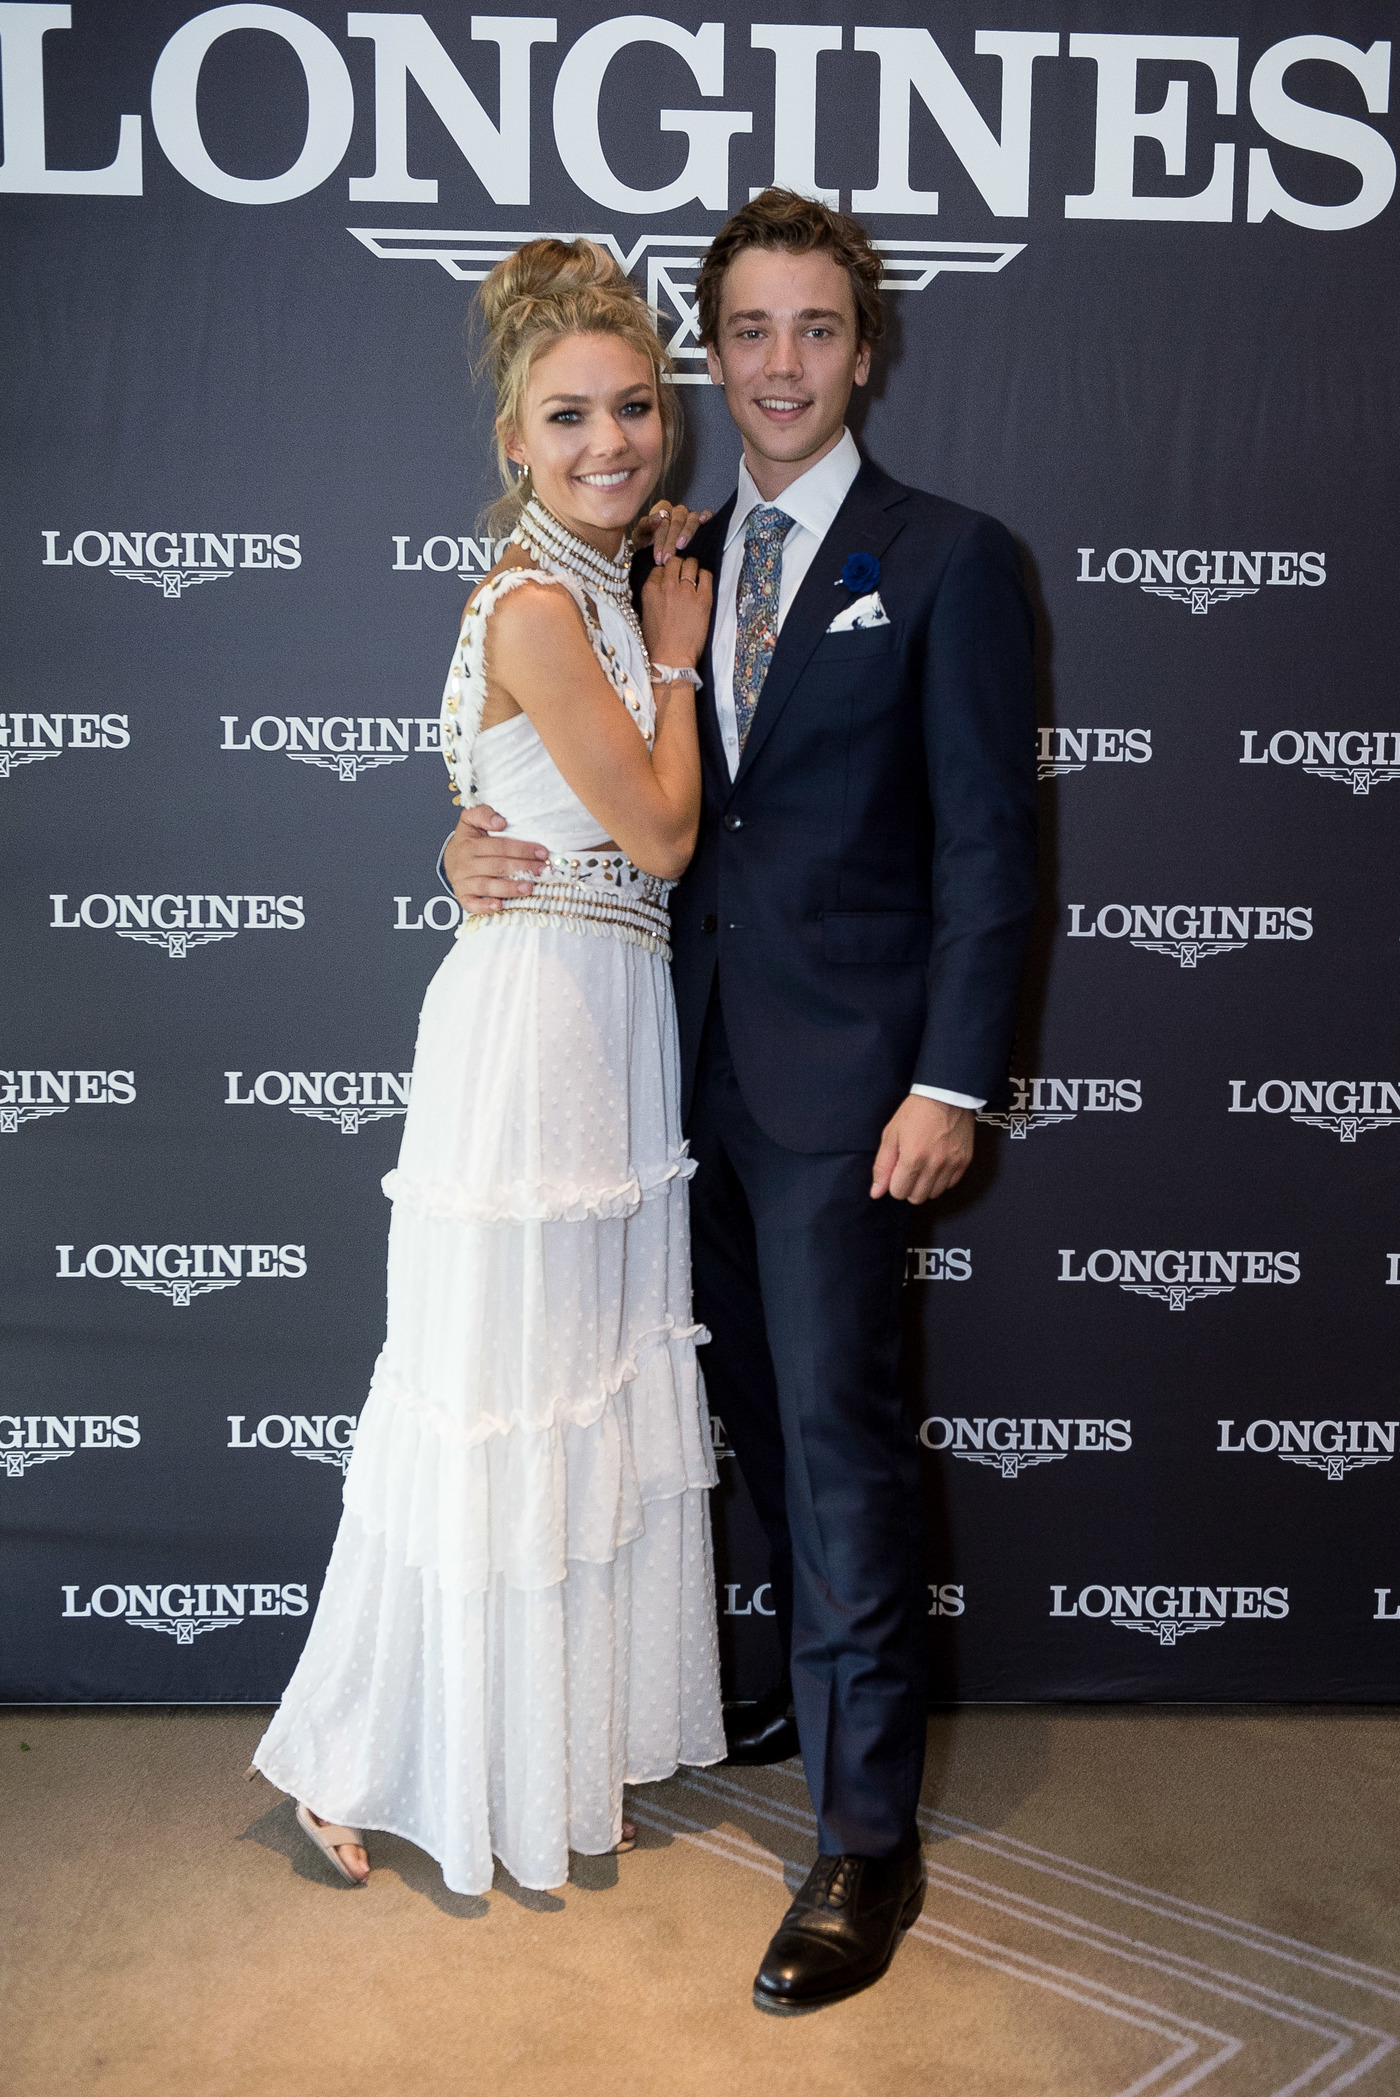 Longines Flat Racing Event: Winx claimed victory at the Longines Queen Elizabeth Stakes 17